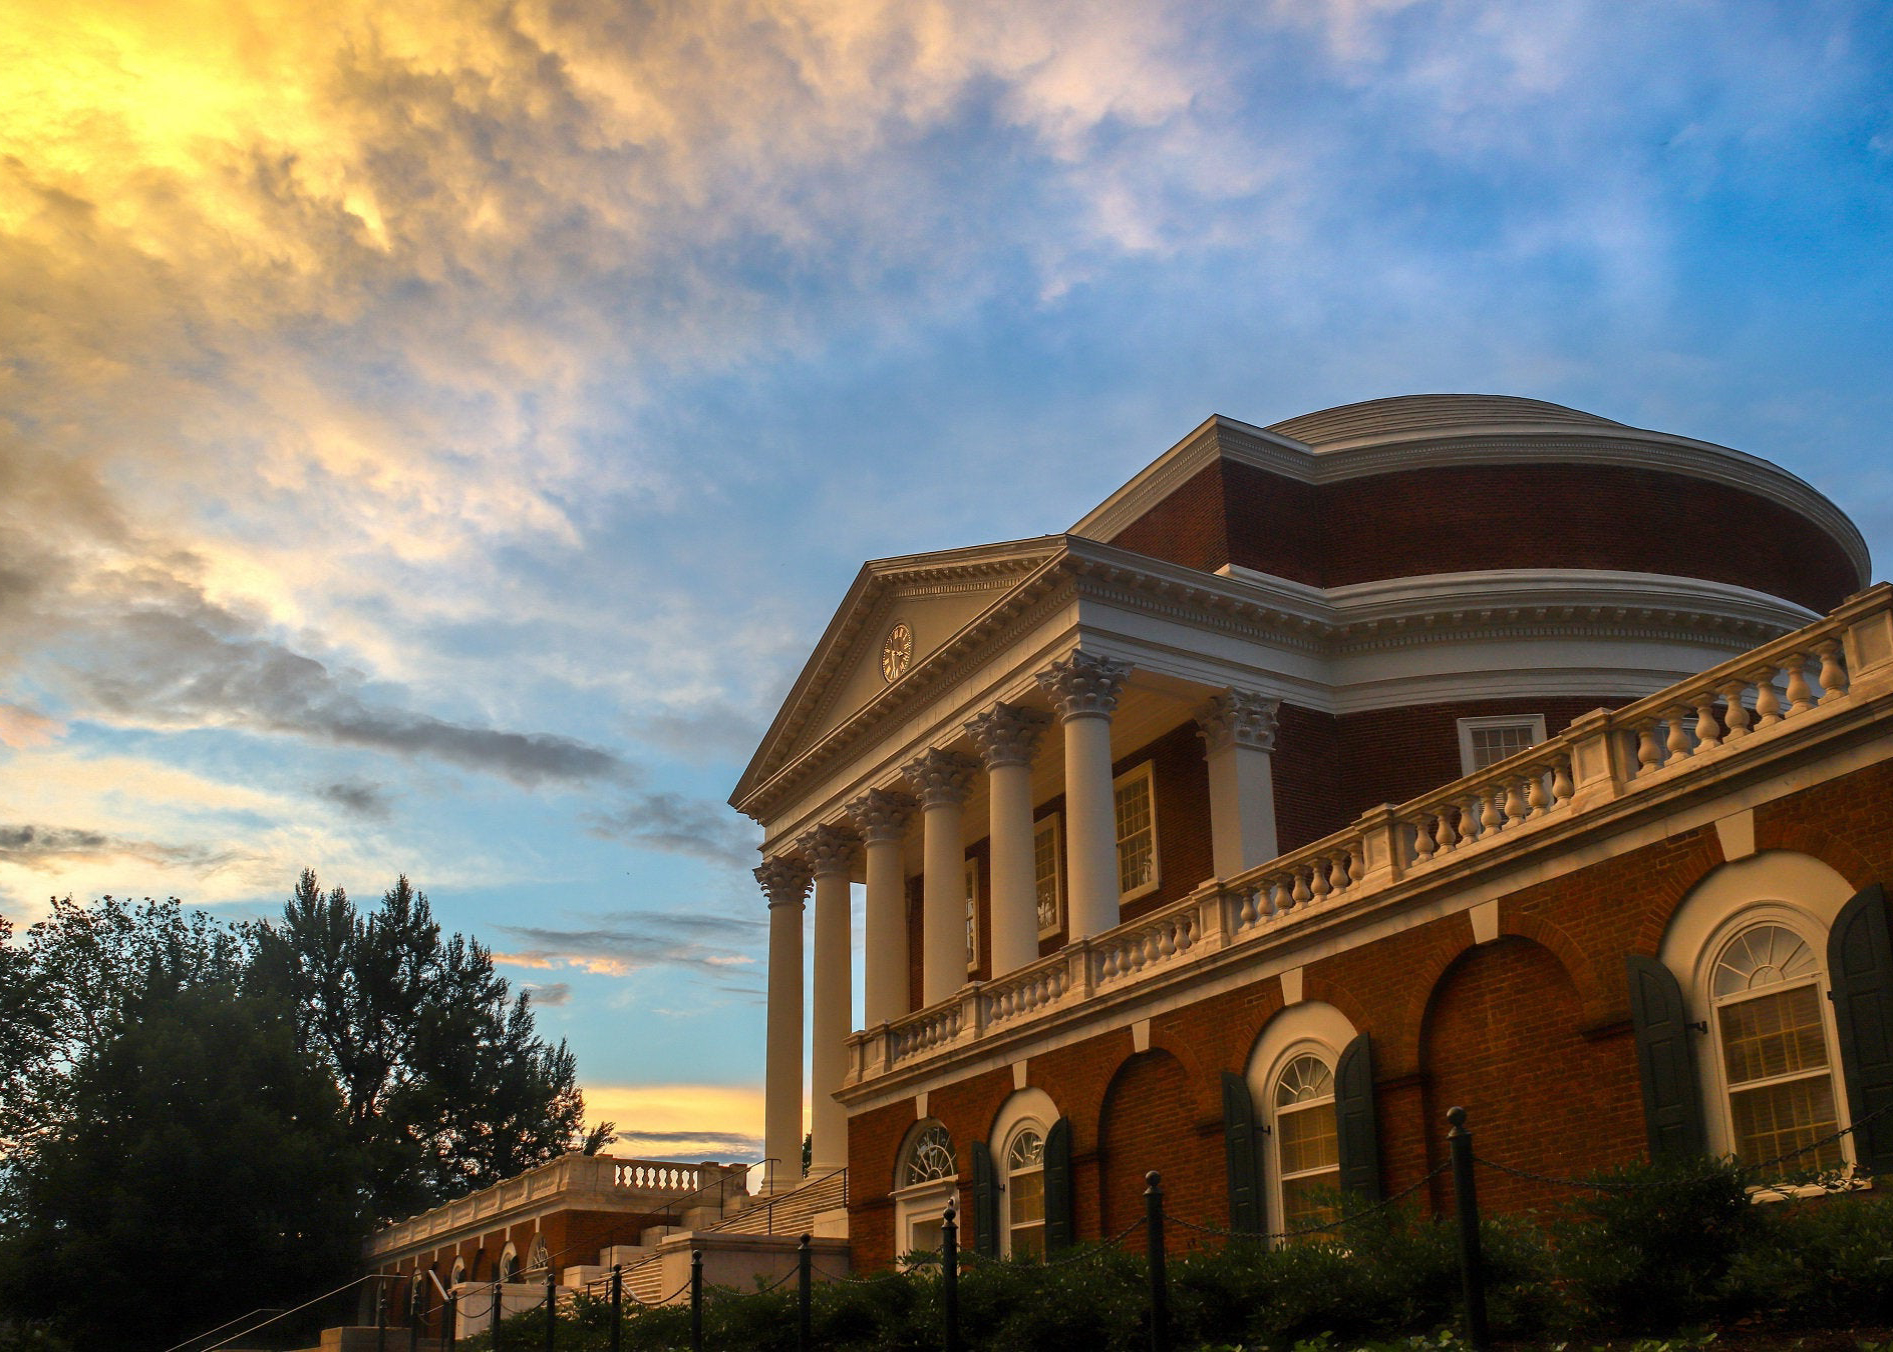 Charlottesville, VA - Home to the University of Virginia, Thomas Jefferson's Monticello, The East Coast's BEST Wineries, Local Craft Breweries, and one of a kind regional award winning cuisine.